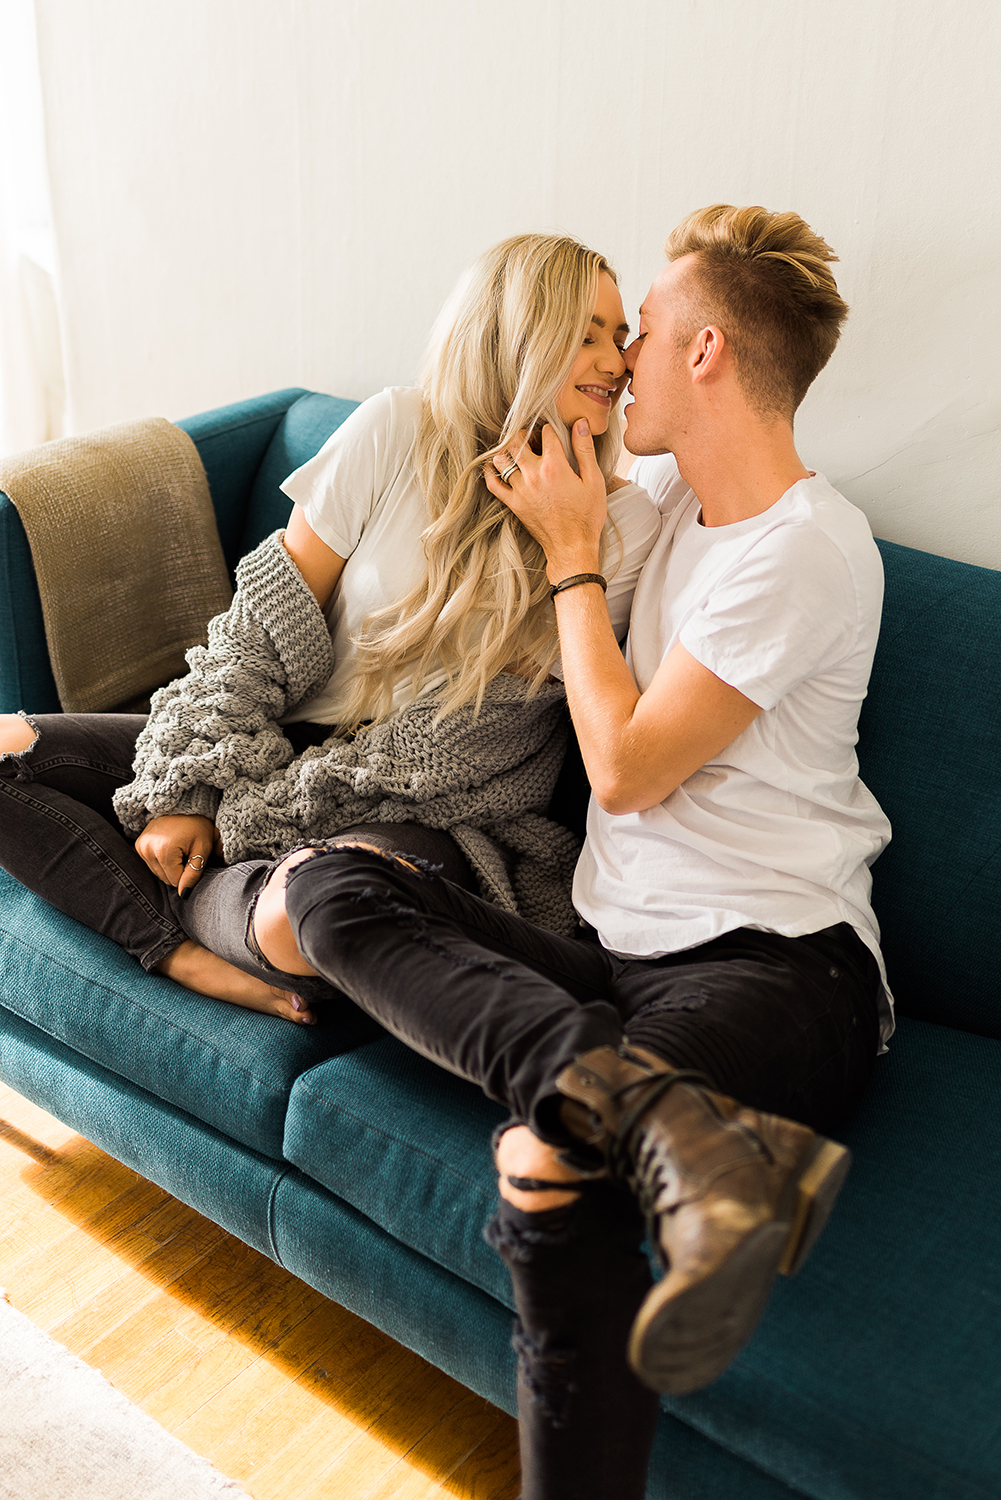 in-home-couples-session-colorado-photographer-43.jpg